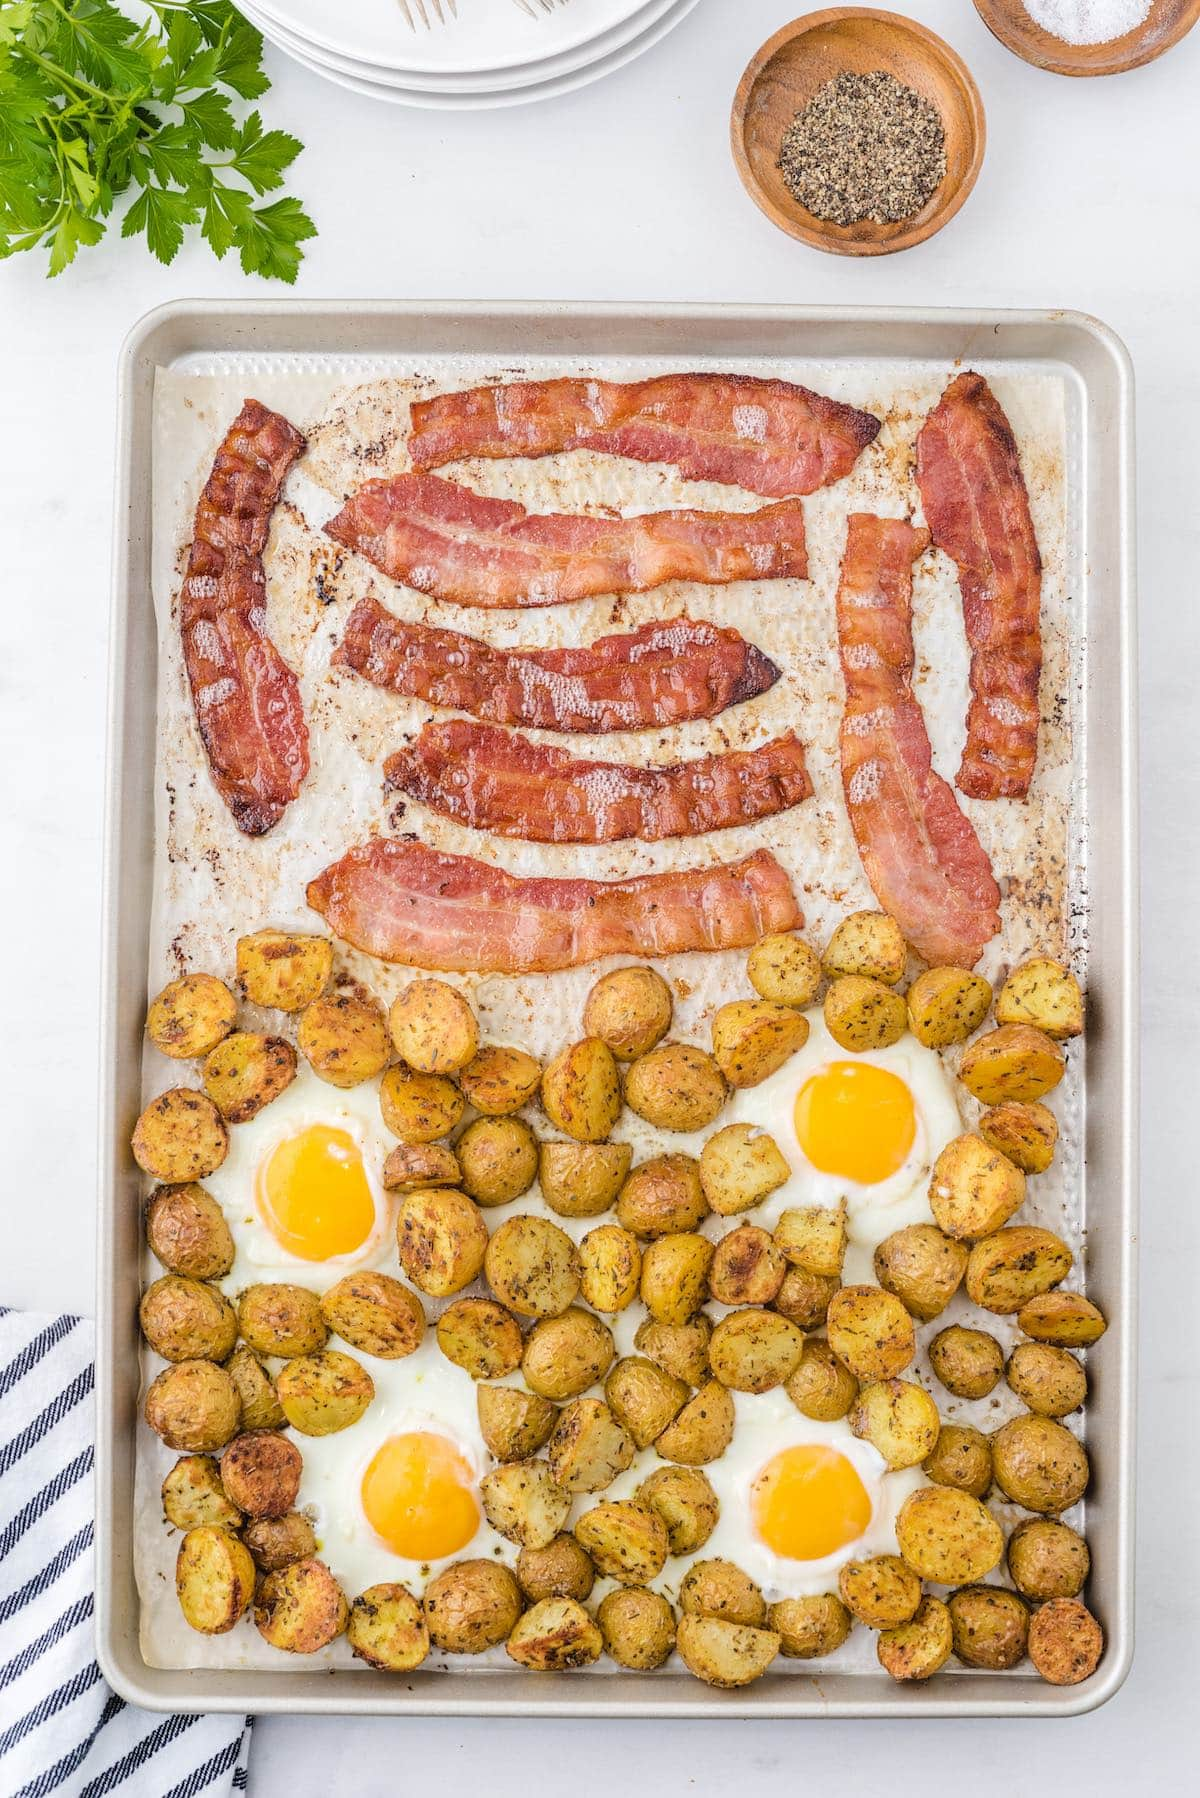 Bacon, potatoes and eggs in the baking dish